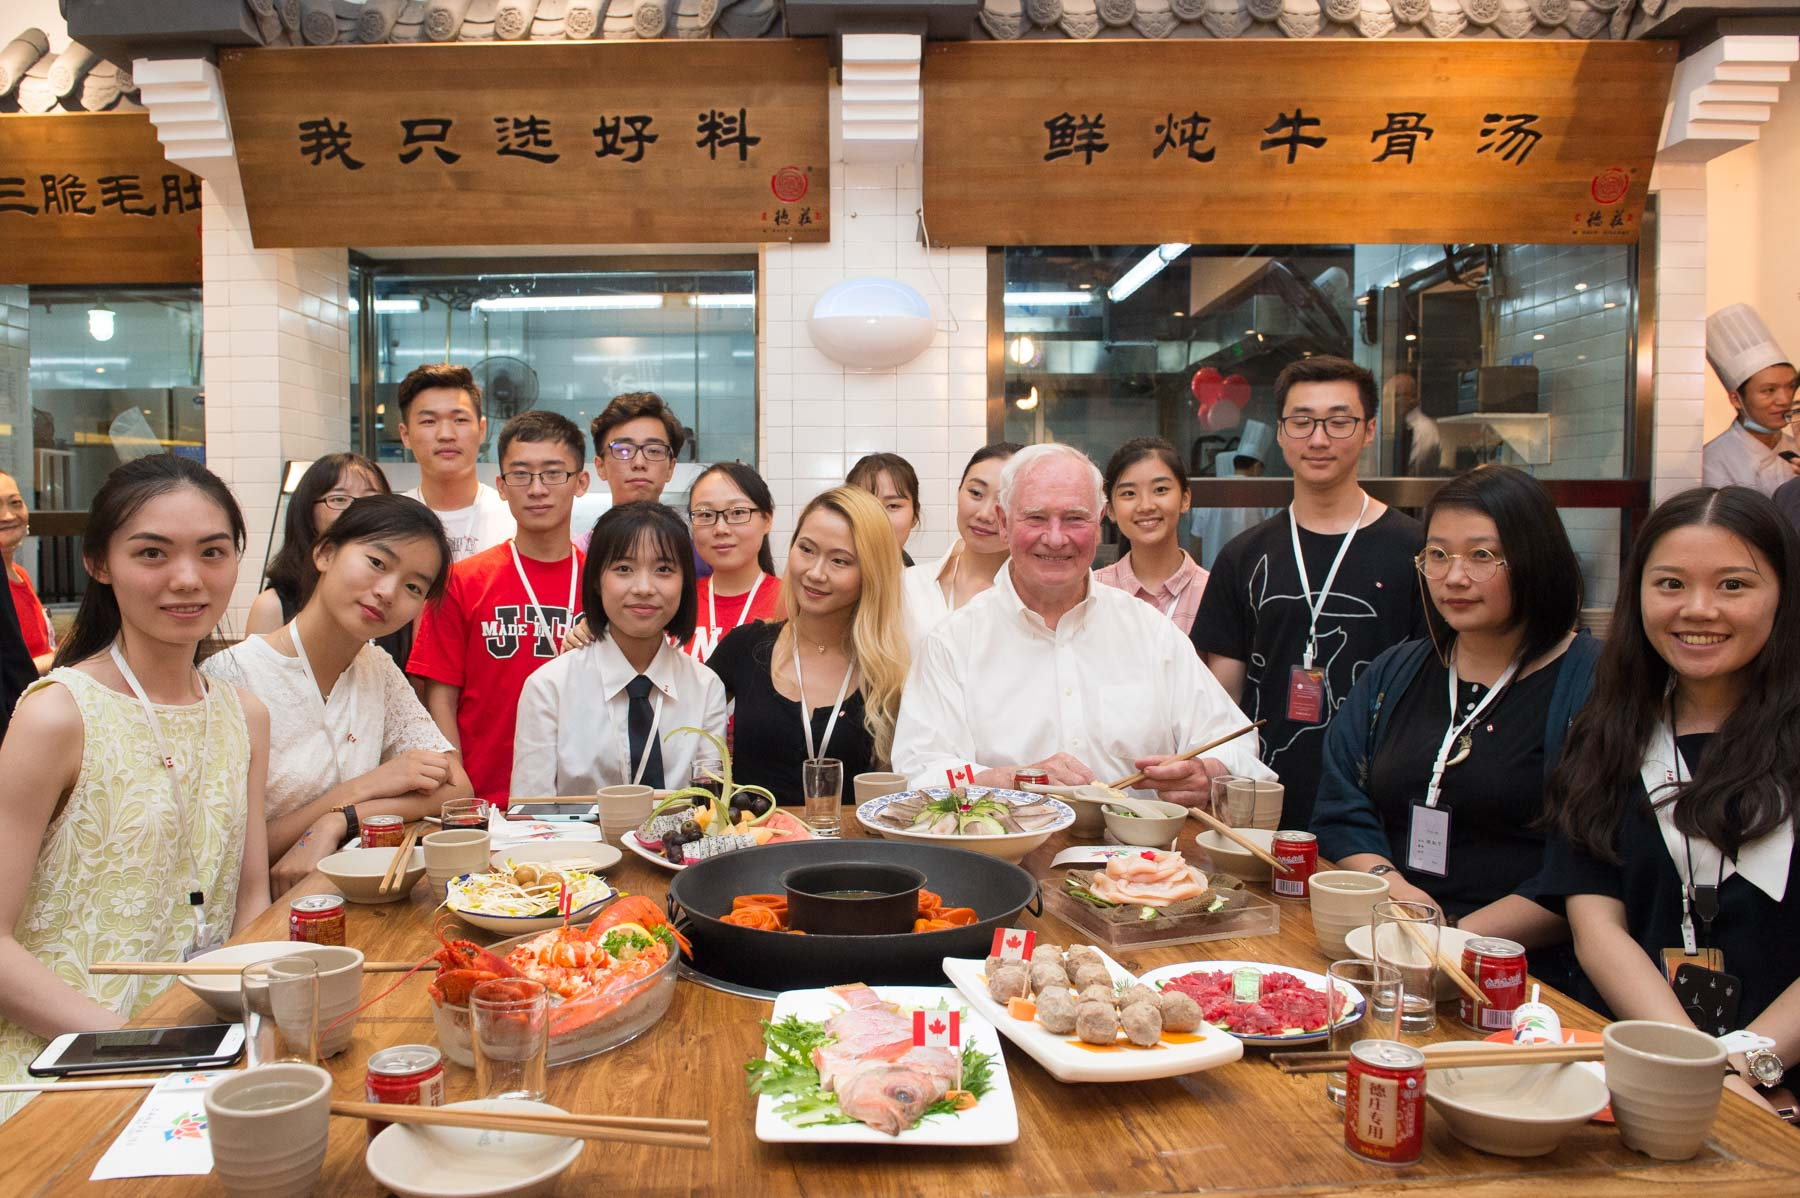 In the evening, the Governor General participated in a hotpot dinner with Chinese students who are preparing to study at Canadian universities in the fall.